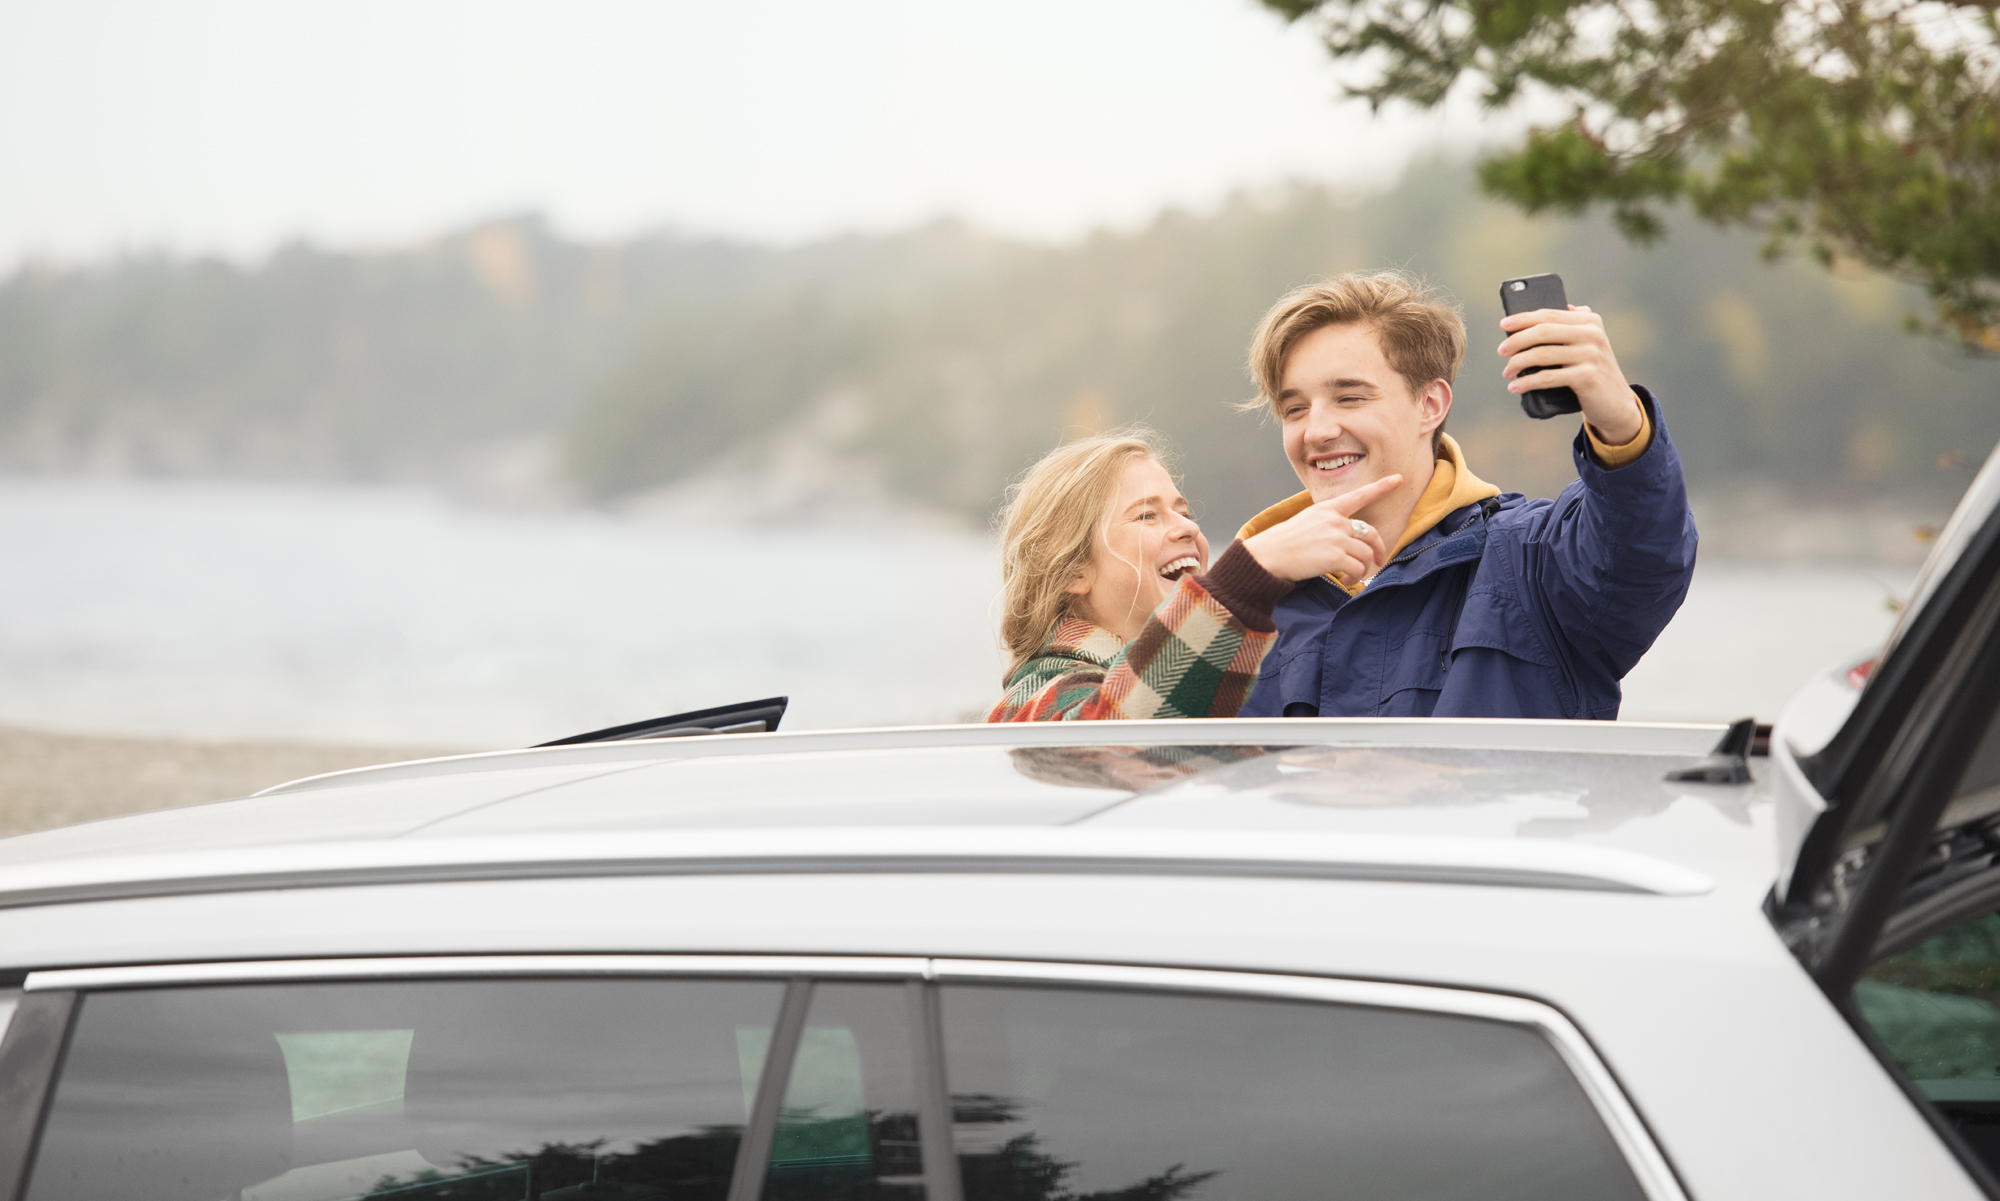 Young couple taking a selfie outside the car by the sea